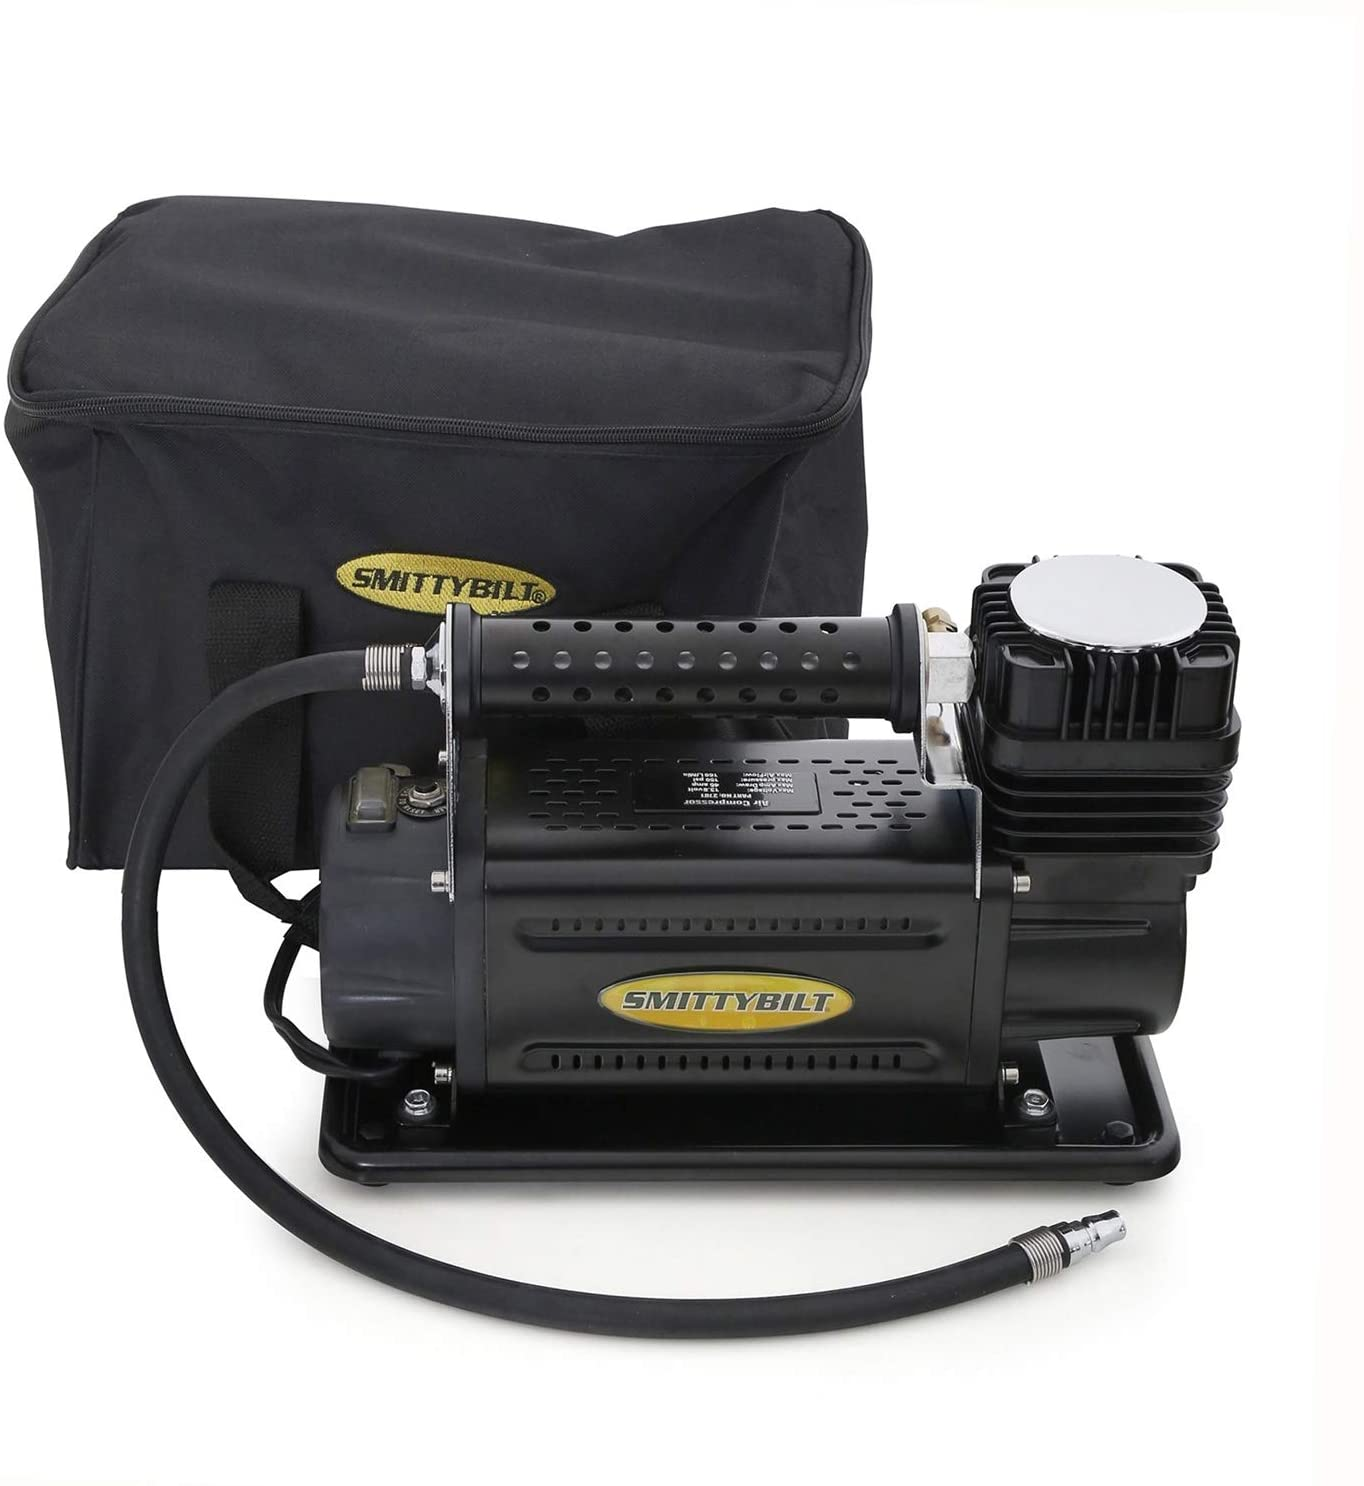 Smittybilt 2781 Air Compressor for Off Road Vehicles